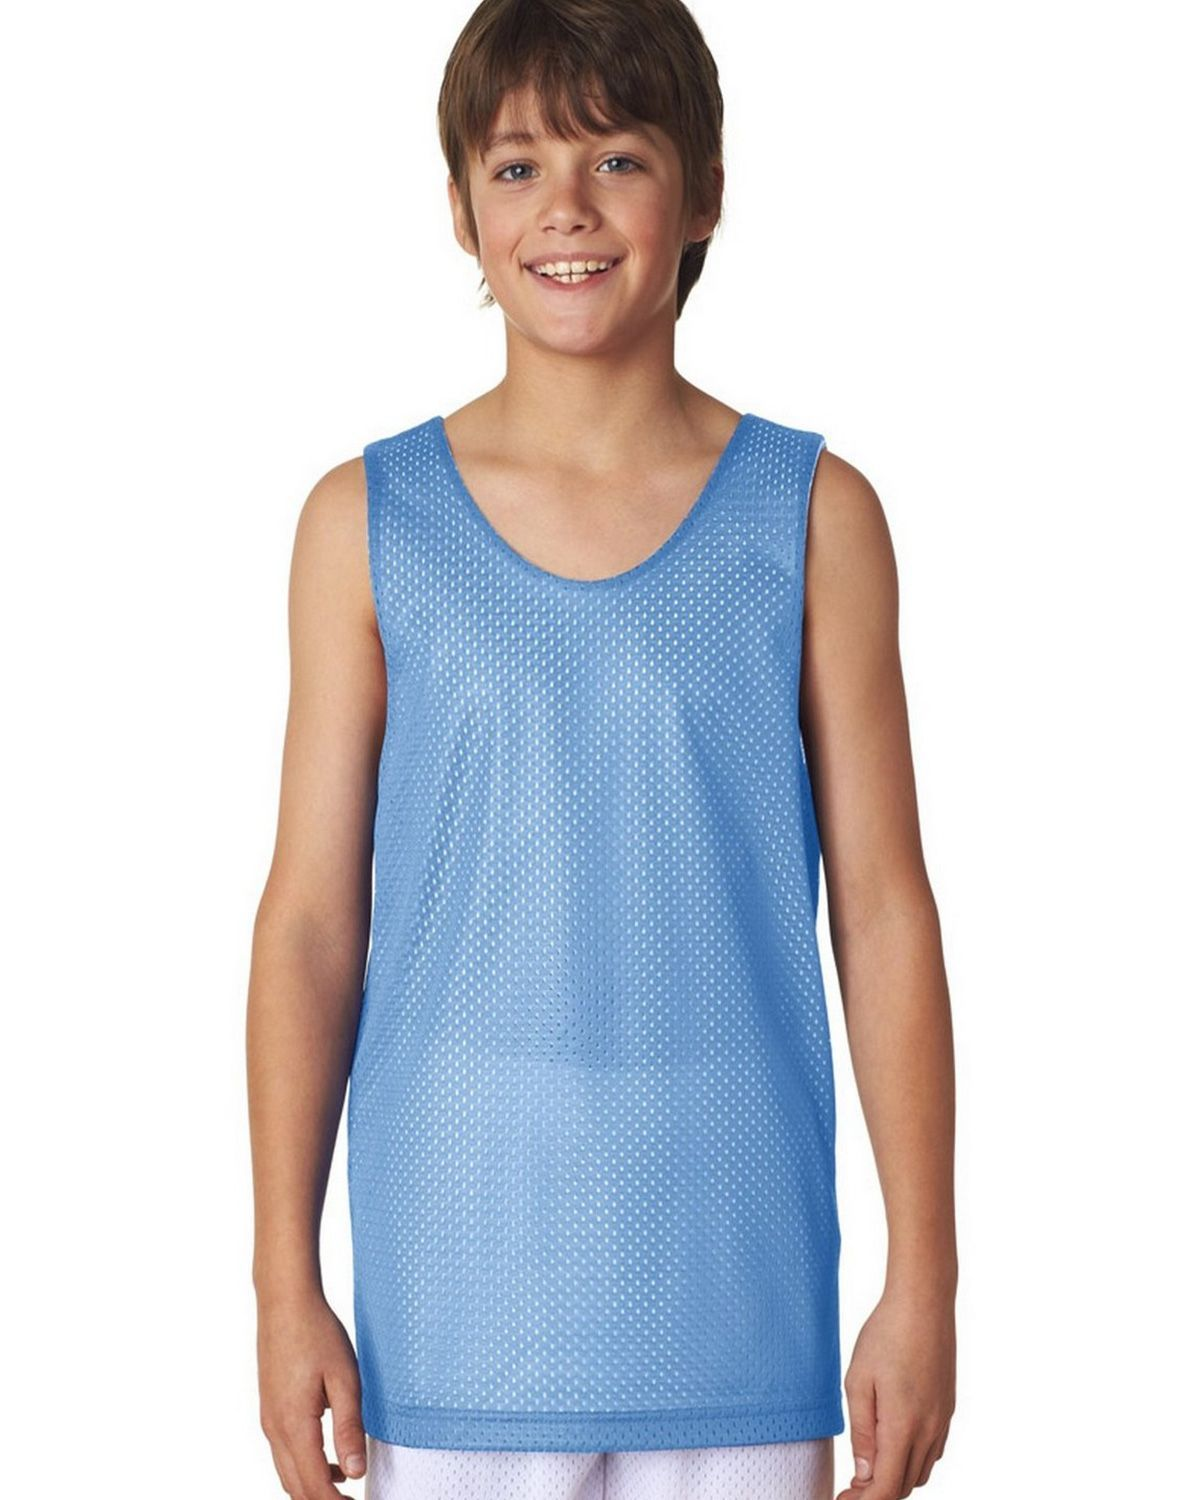 Image of A4 N2206 Youth Reversible Mesh Tank - Light Blue/White - S